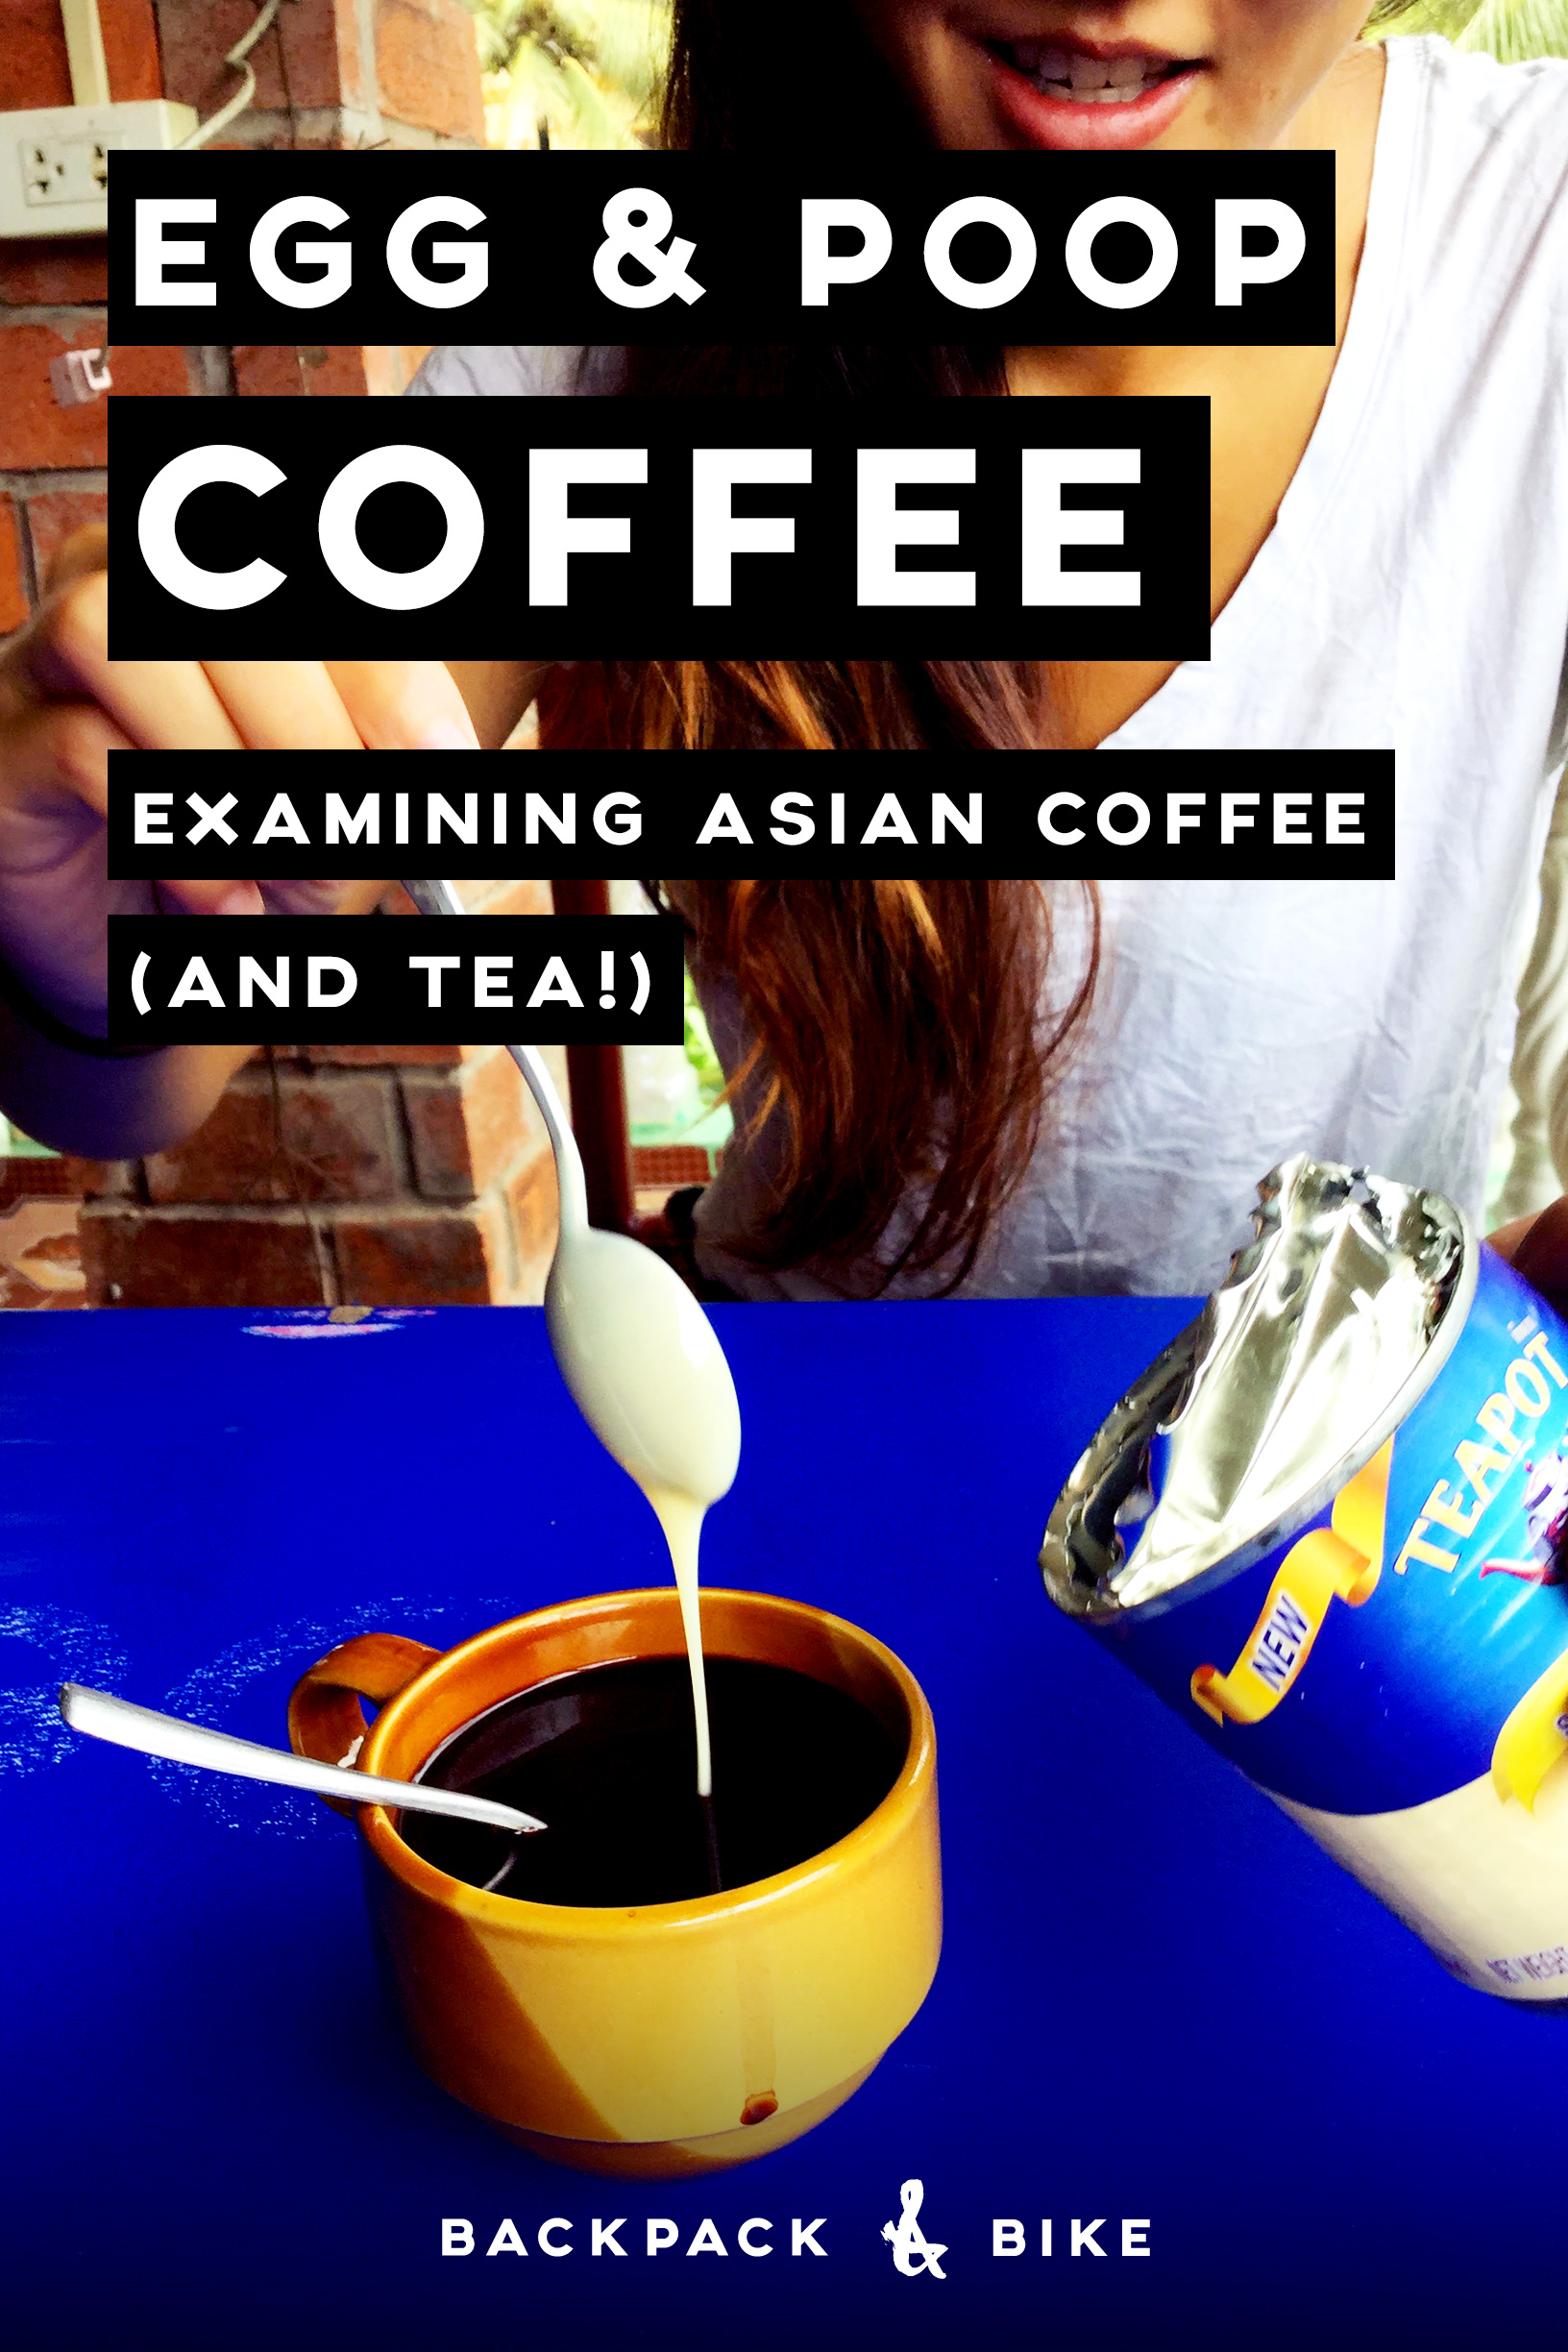 From Egg to Poop Coffee | Examining Asian Coffee (and tea!) | Taking a look at the wild coffee and tea styles of Southeast Asia that a foodie must try during your travels!